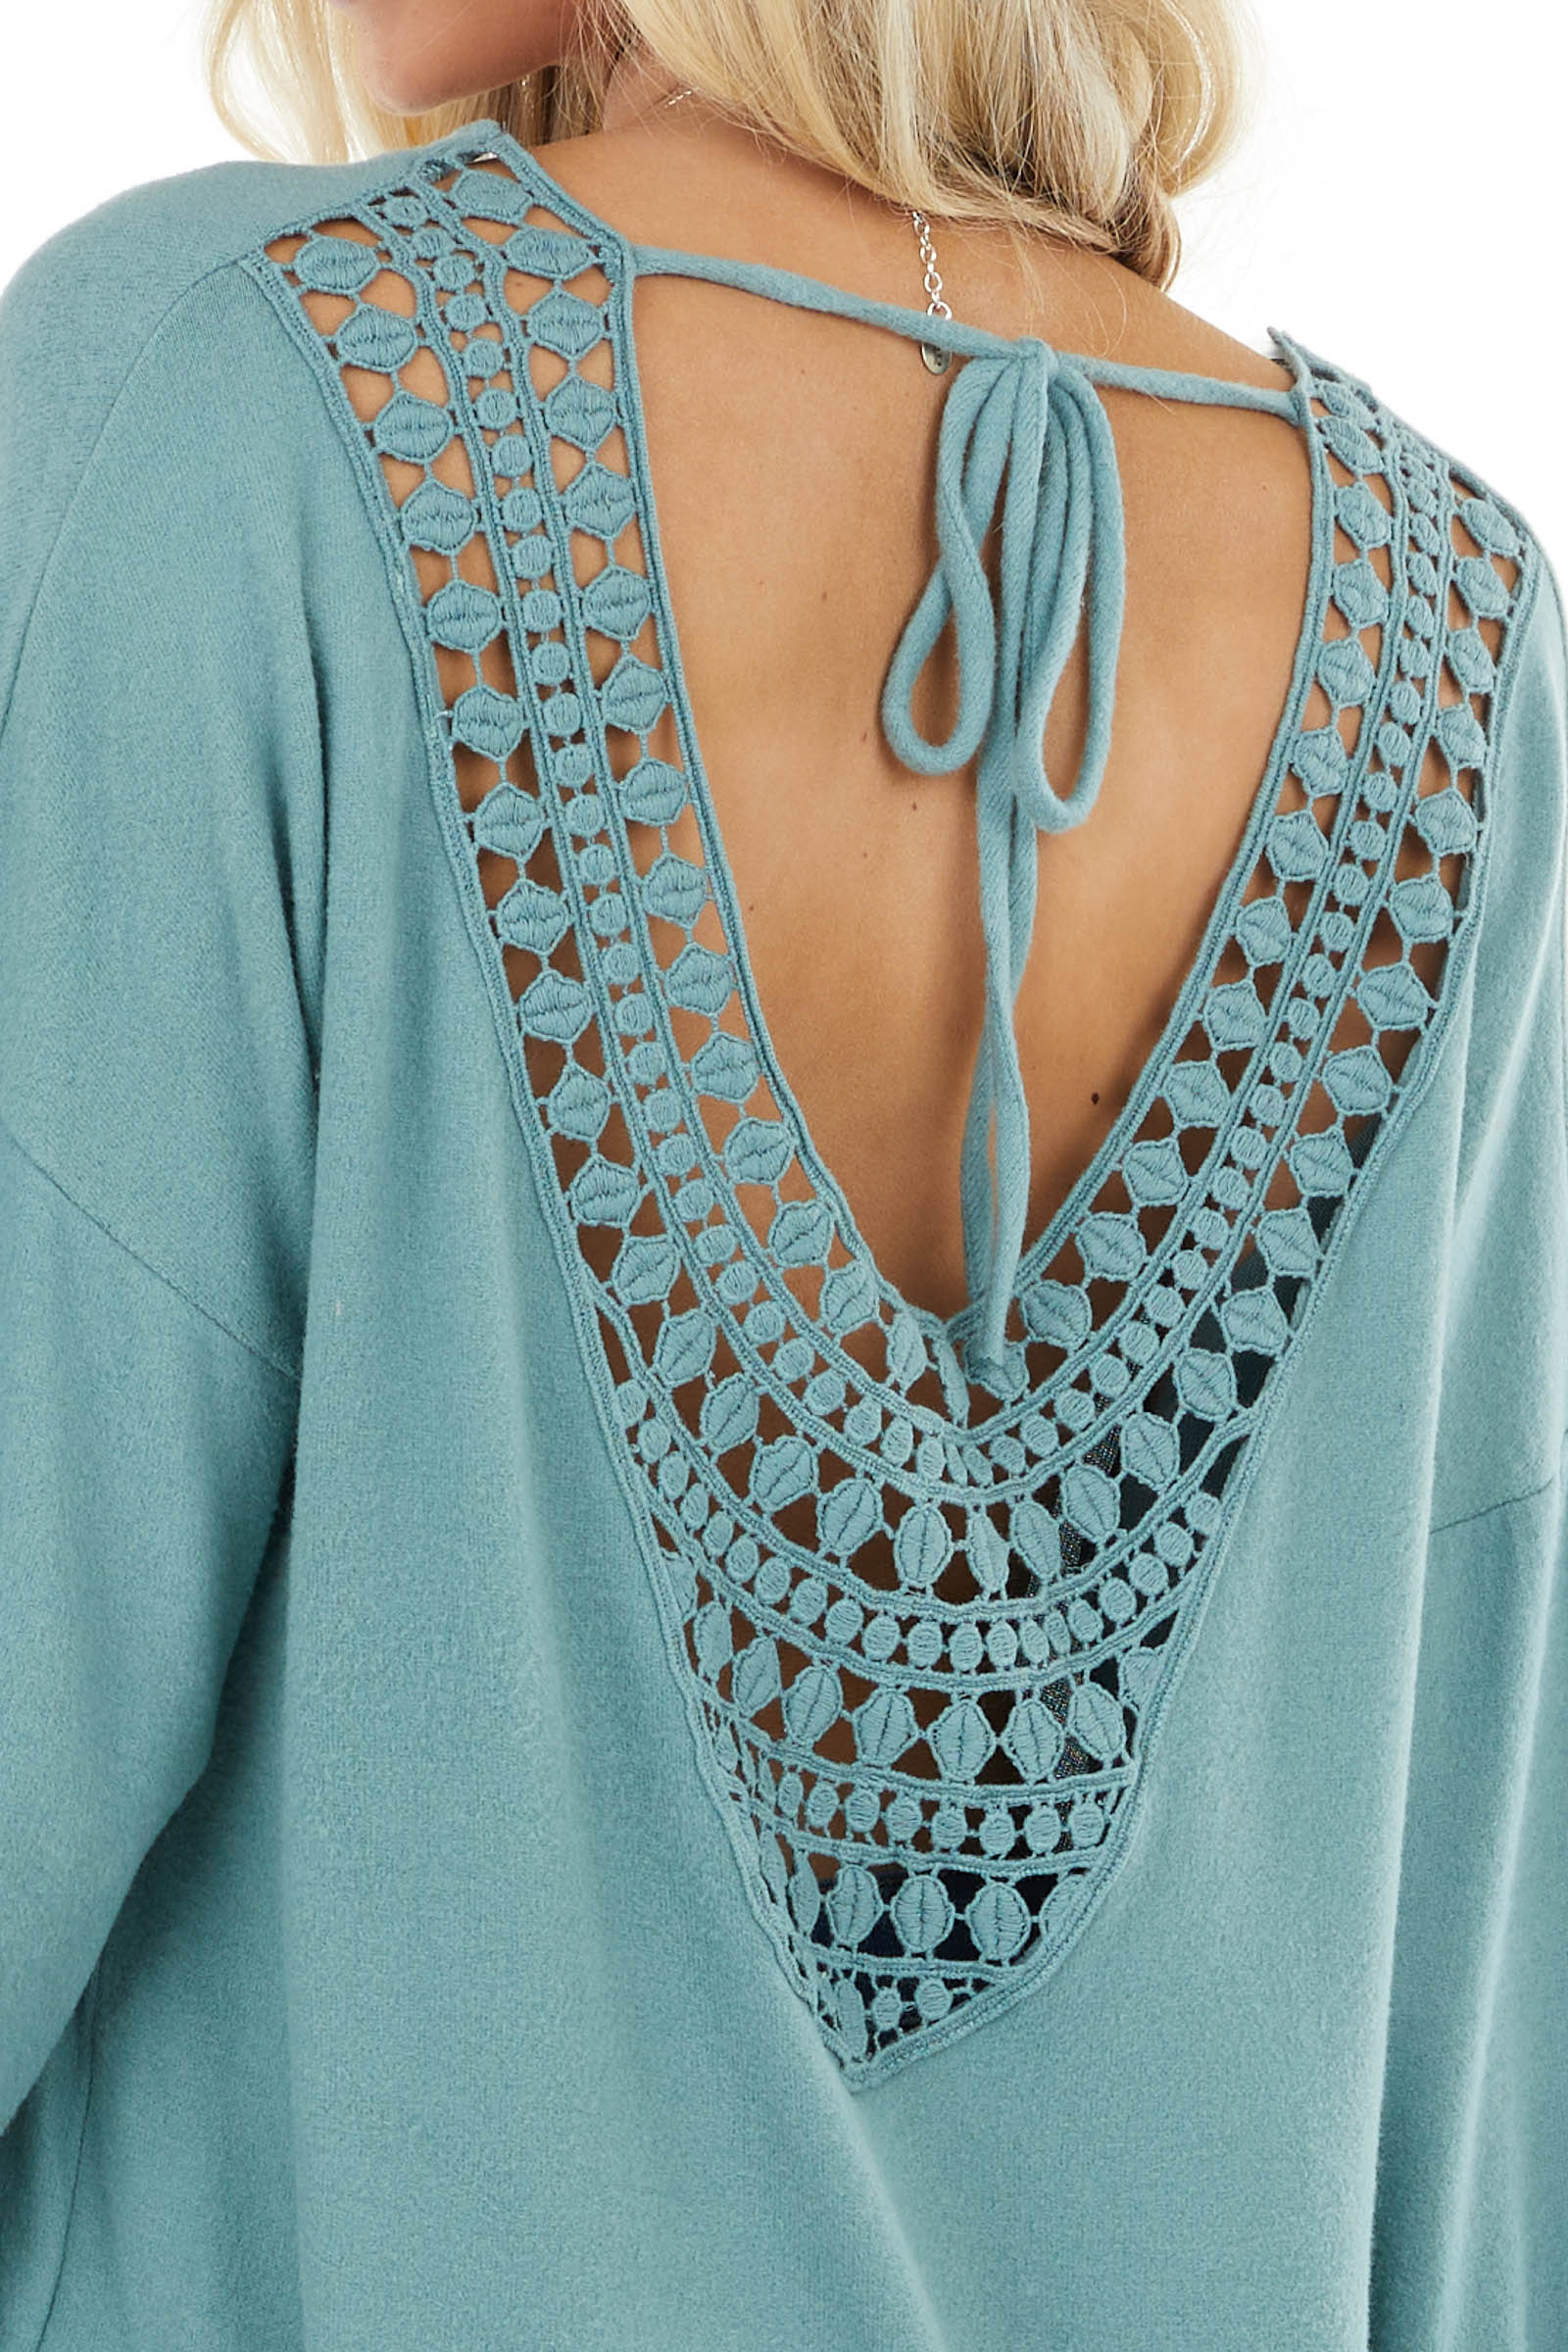 Sage Long Sleeve Top with Crochet Lace and Tie Detail